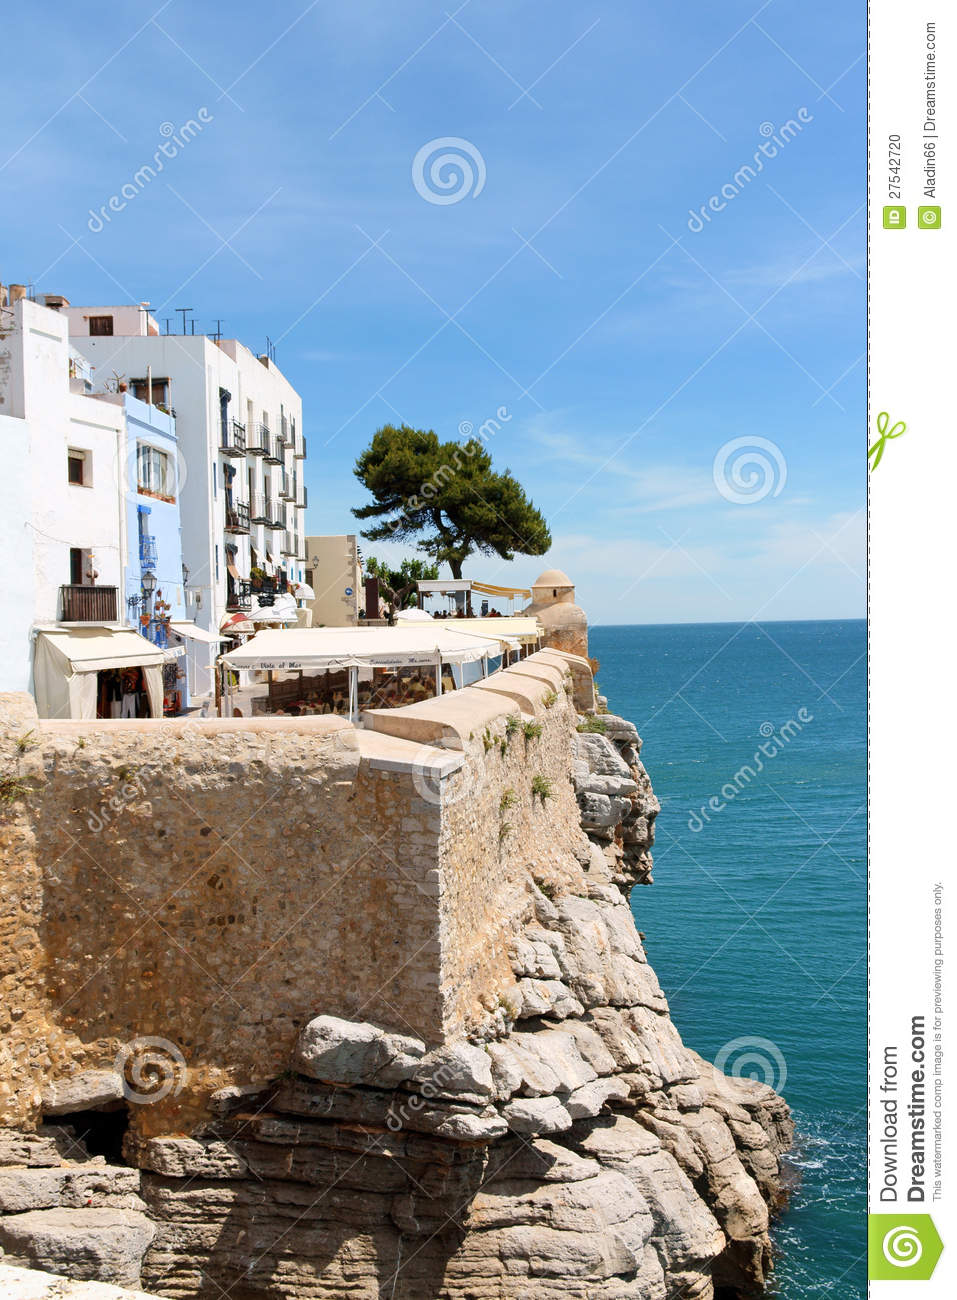 Peniscola Spain  city images : Peniscola, Spain May 31, 2010: Glimpse of Peniscola with its white ...